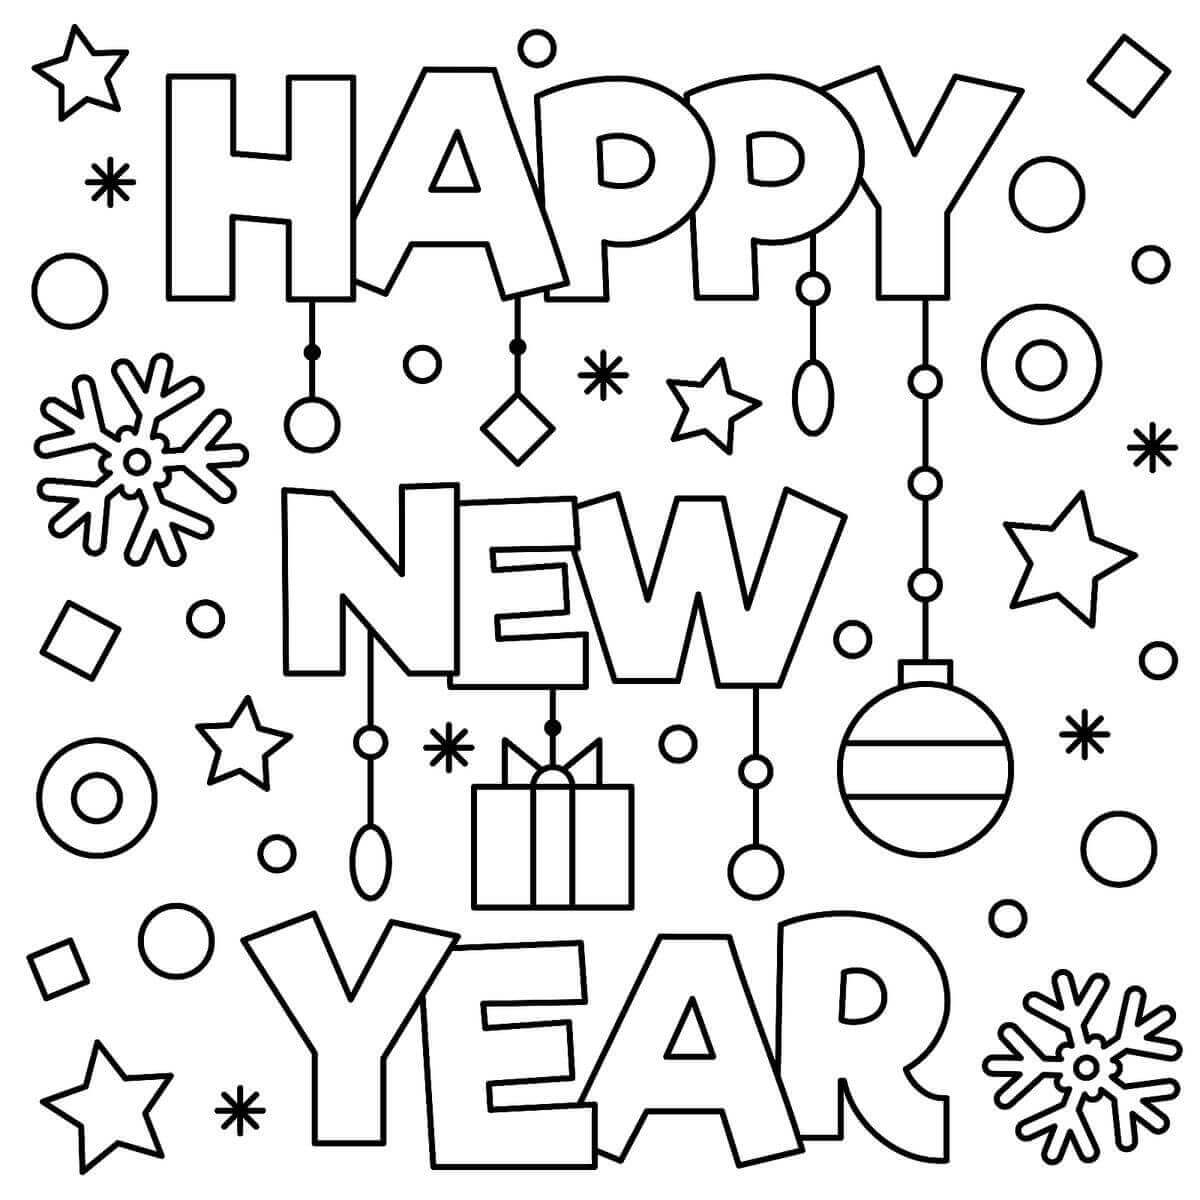 Happy New Year Coloring Free Printable Paper Trail Design Mixed ... | 1200x1200